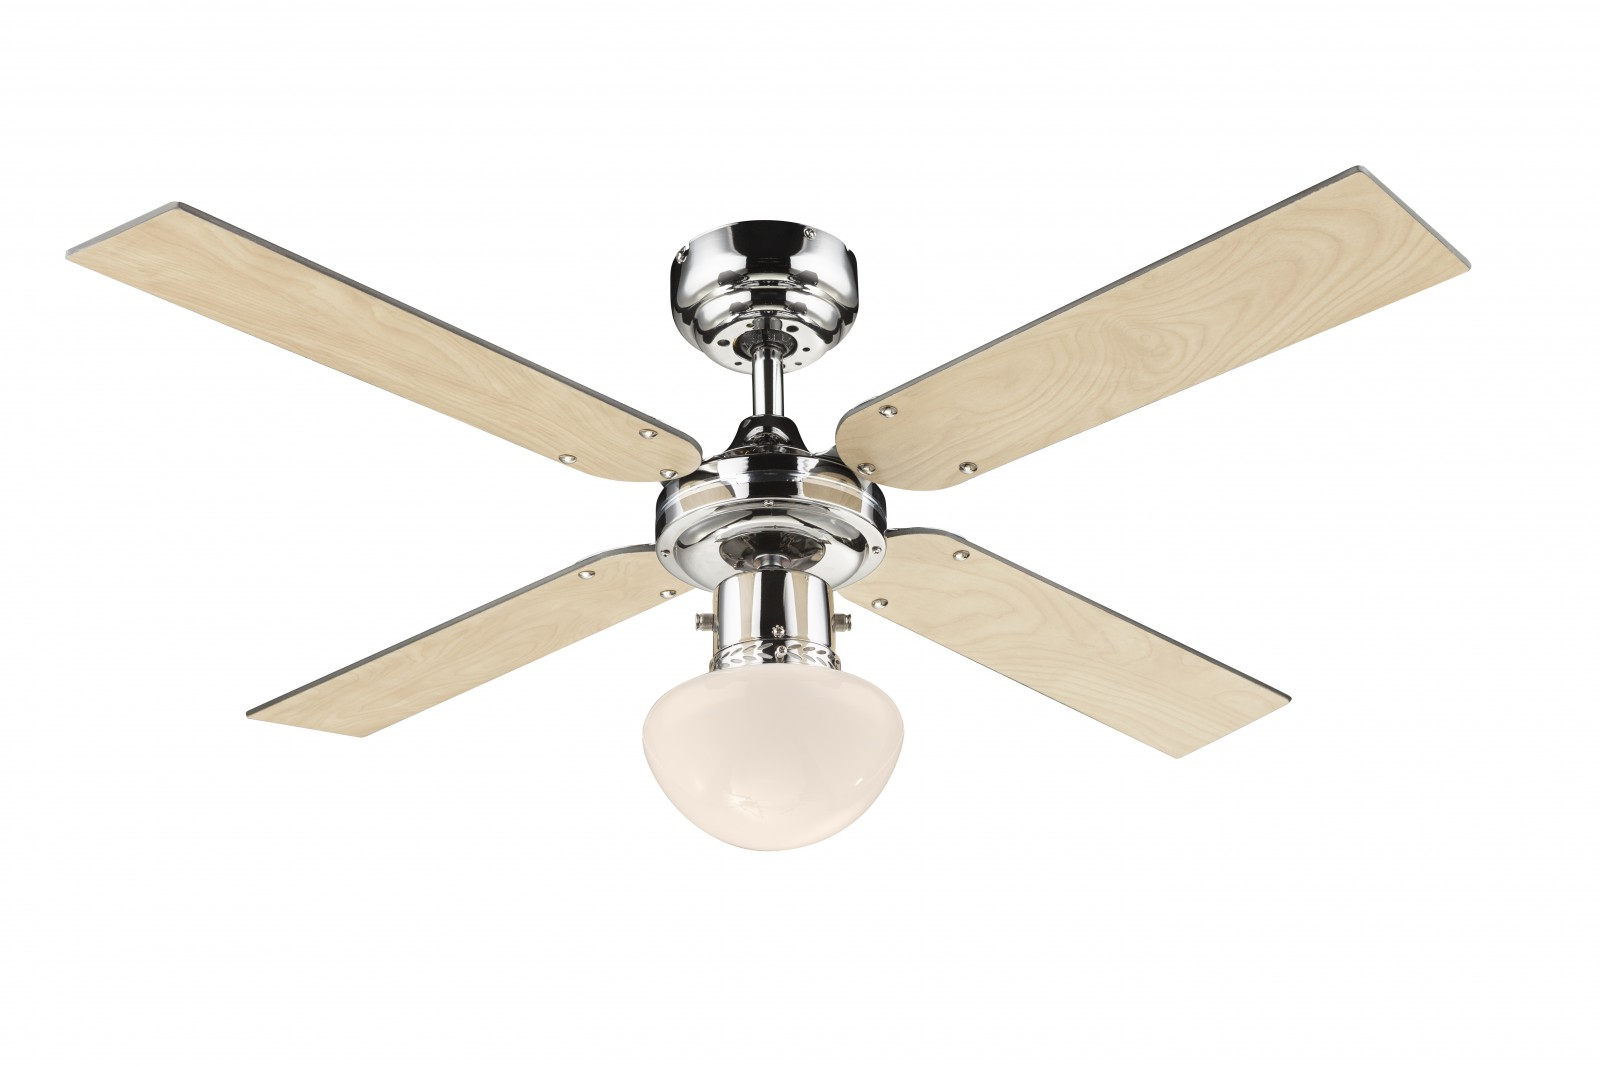 Ceiling Fans With Electrical Cords : Globo ceiling fan champion chrome cm quot blades